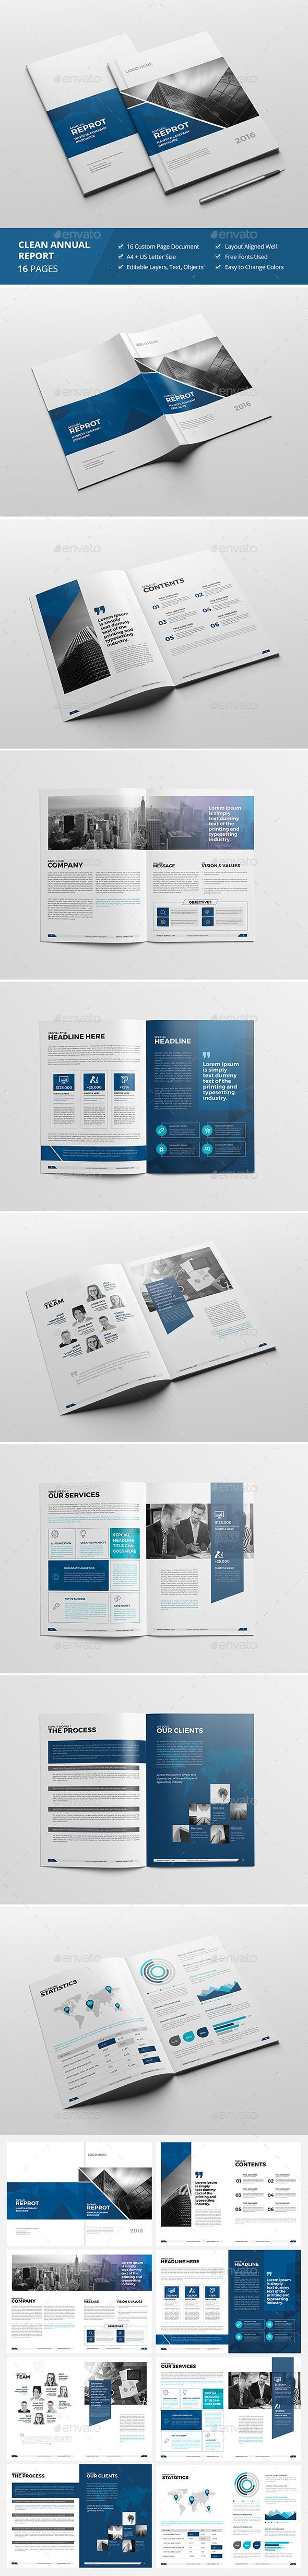 Haweya Modern Annual Report This InDesign Brochure Template is Clean & Professional. Create your company's documentation quick and easy. The template comes with organized layers, easy to customize & change colors. Multipurpose Usage This Template is suitable for any project purpose. Very easy to use and customize. It can be used as : Company Brochure / Coporate Brief / Agency Brochure / Annual Report / Features: Adobe InDesign (.Indd) + Idml A4 + U.S Letter size included ( 16 Pages ) Dimension :